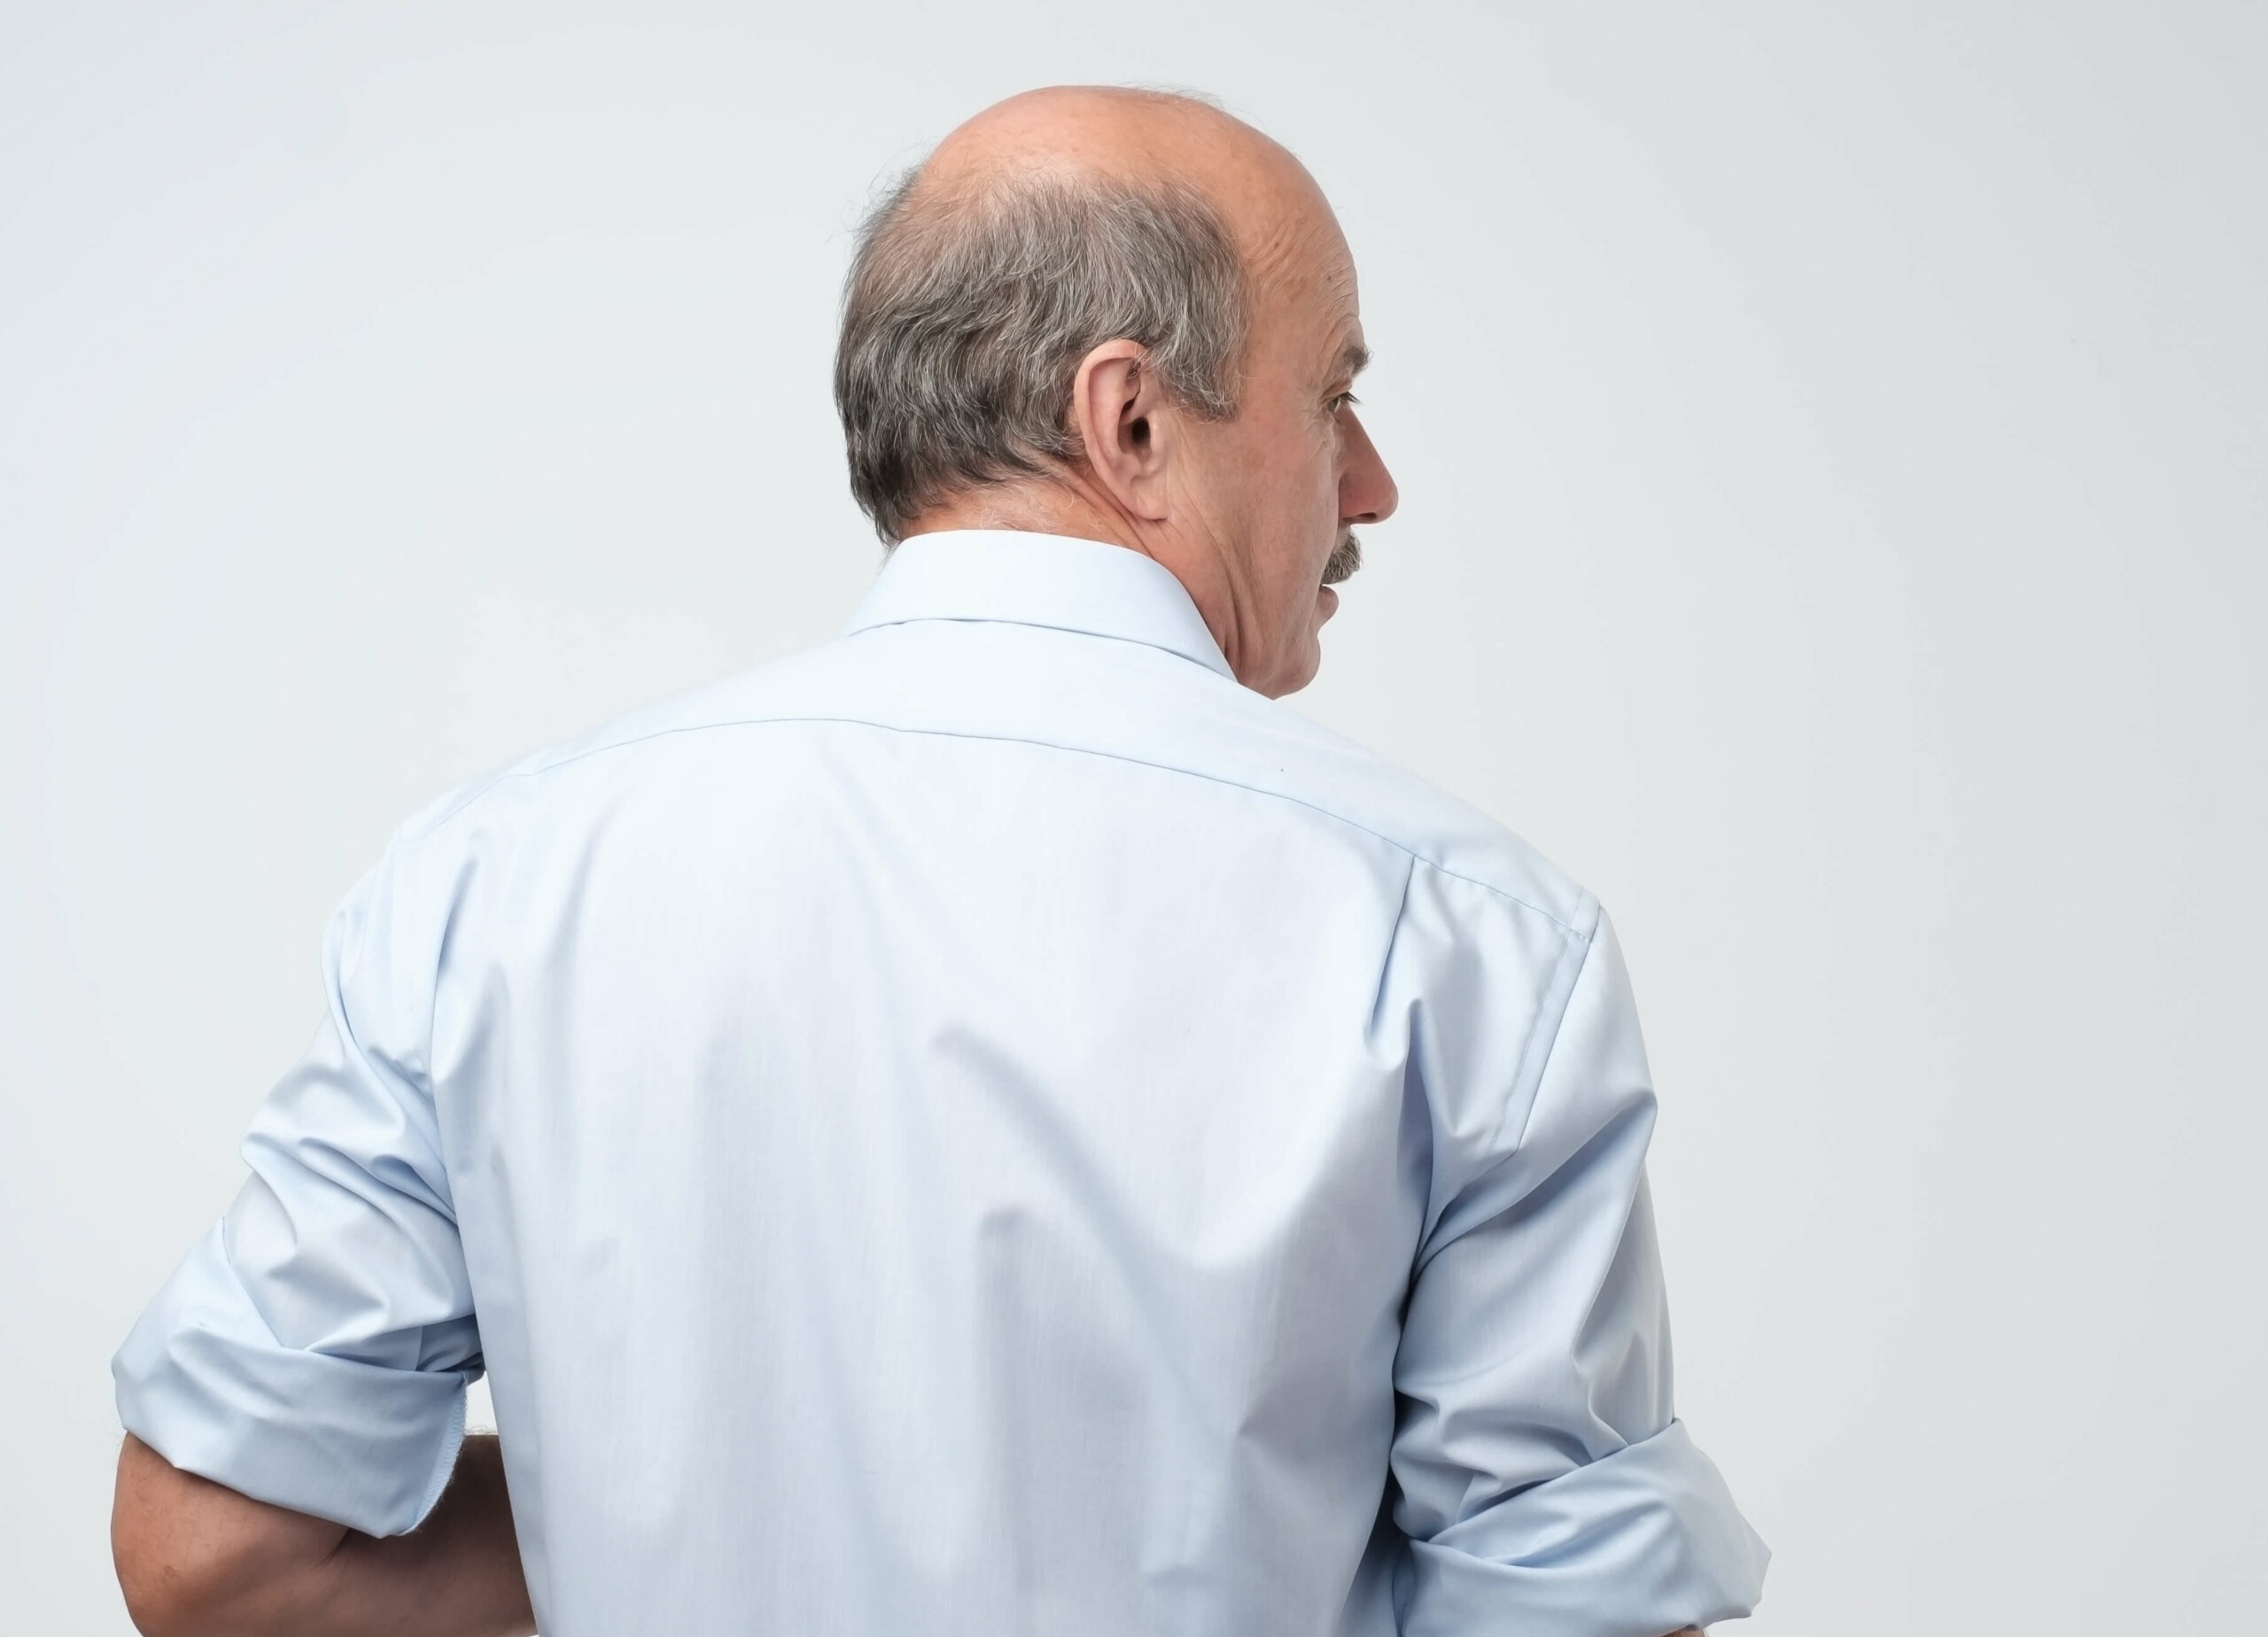 The back of a bald man with his head turned to the right, showing the areas of the scalp that androgenic alopecia affects.